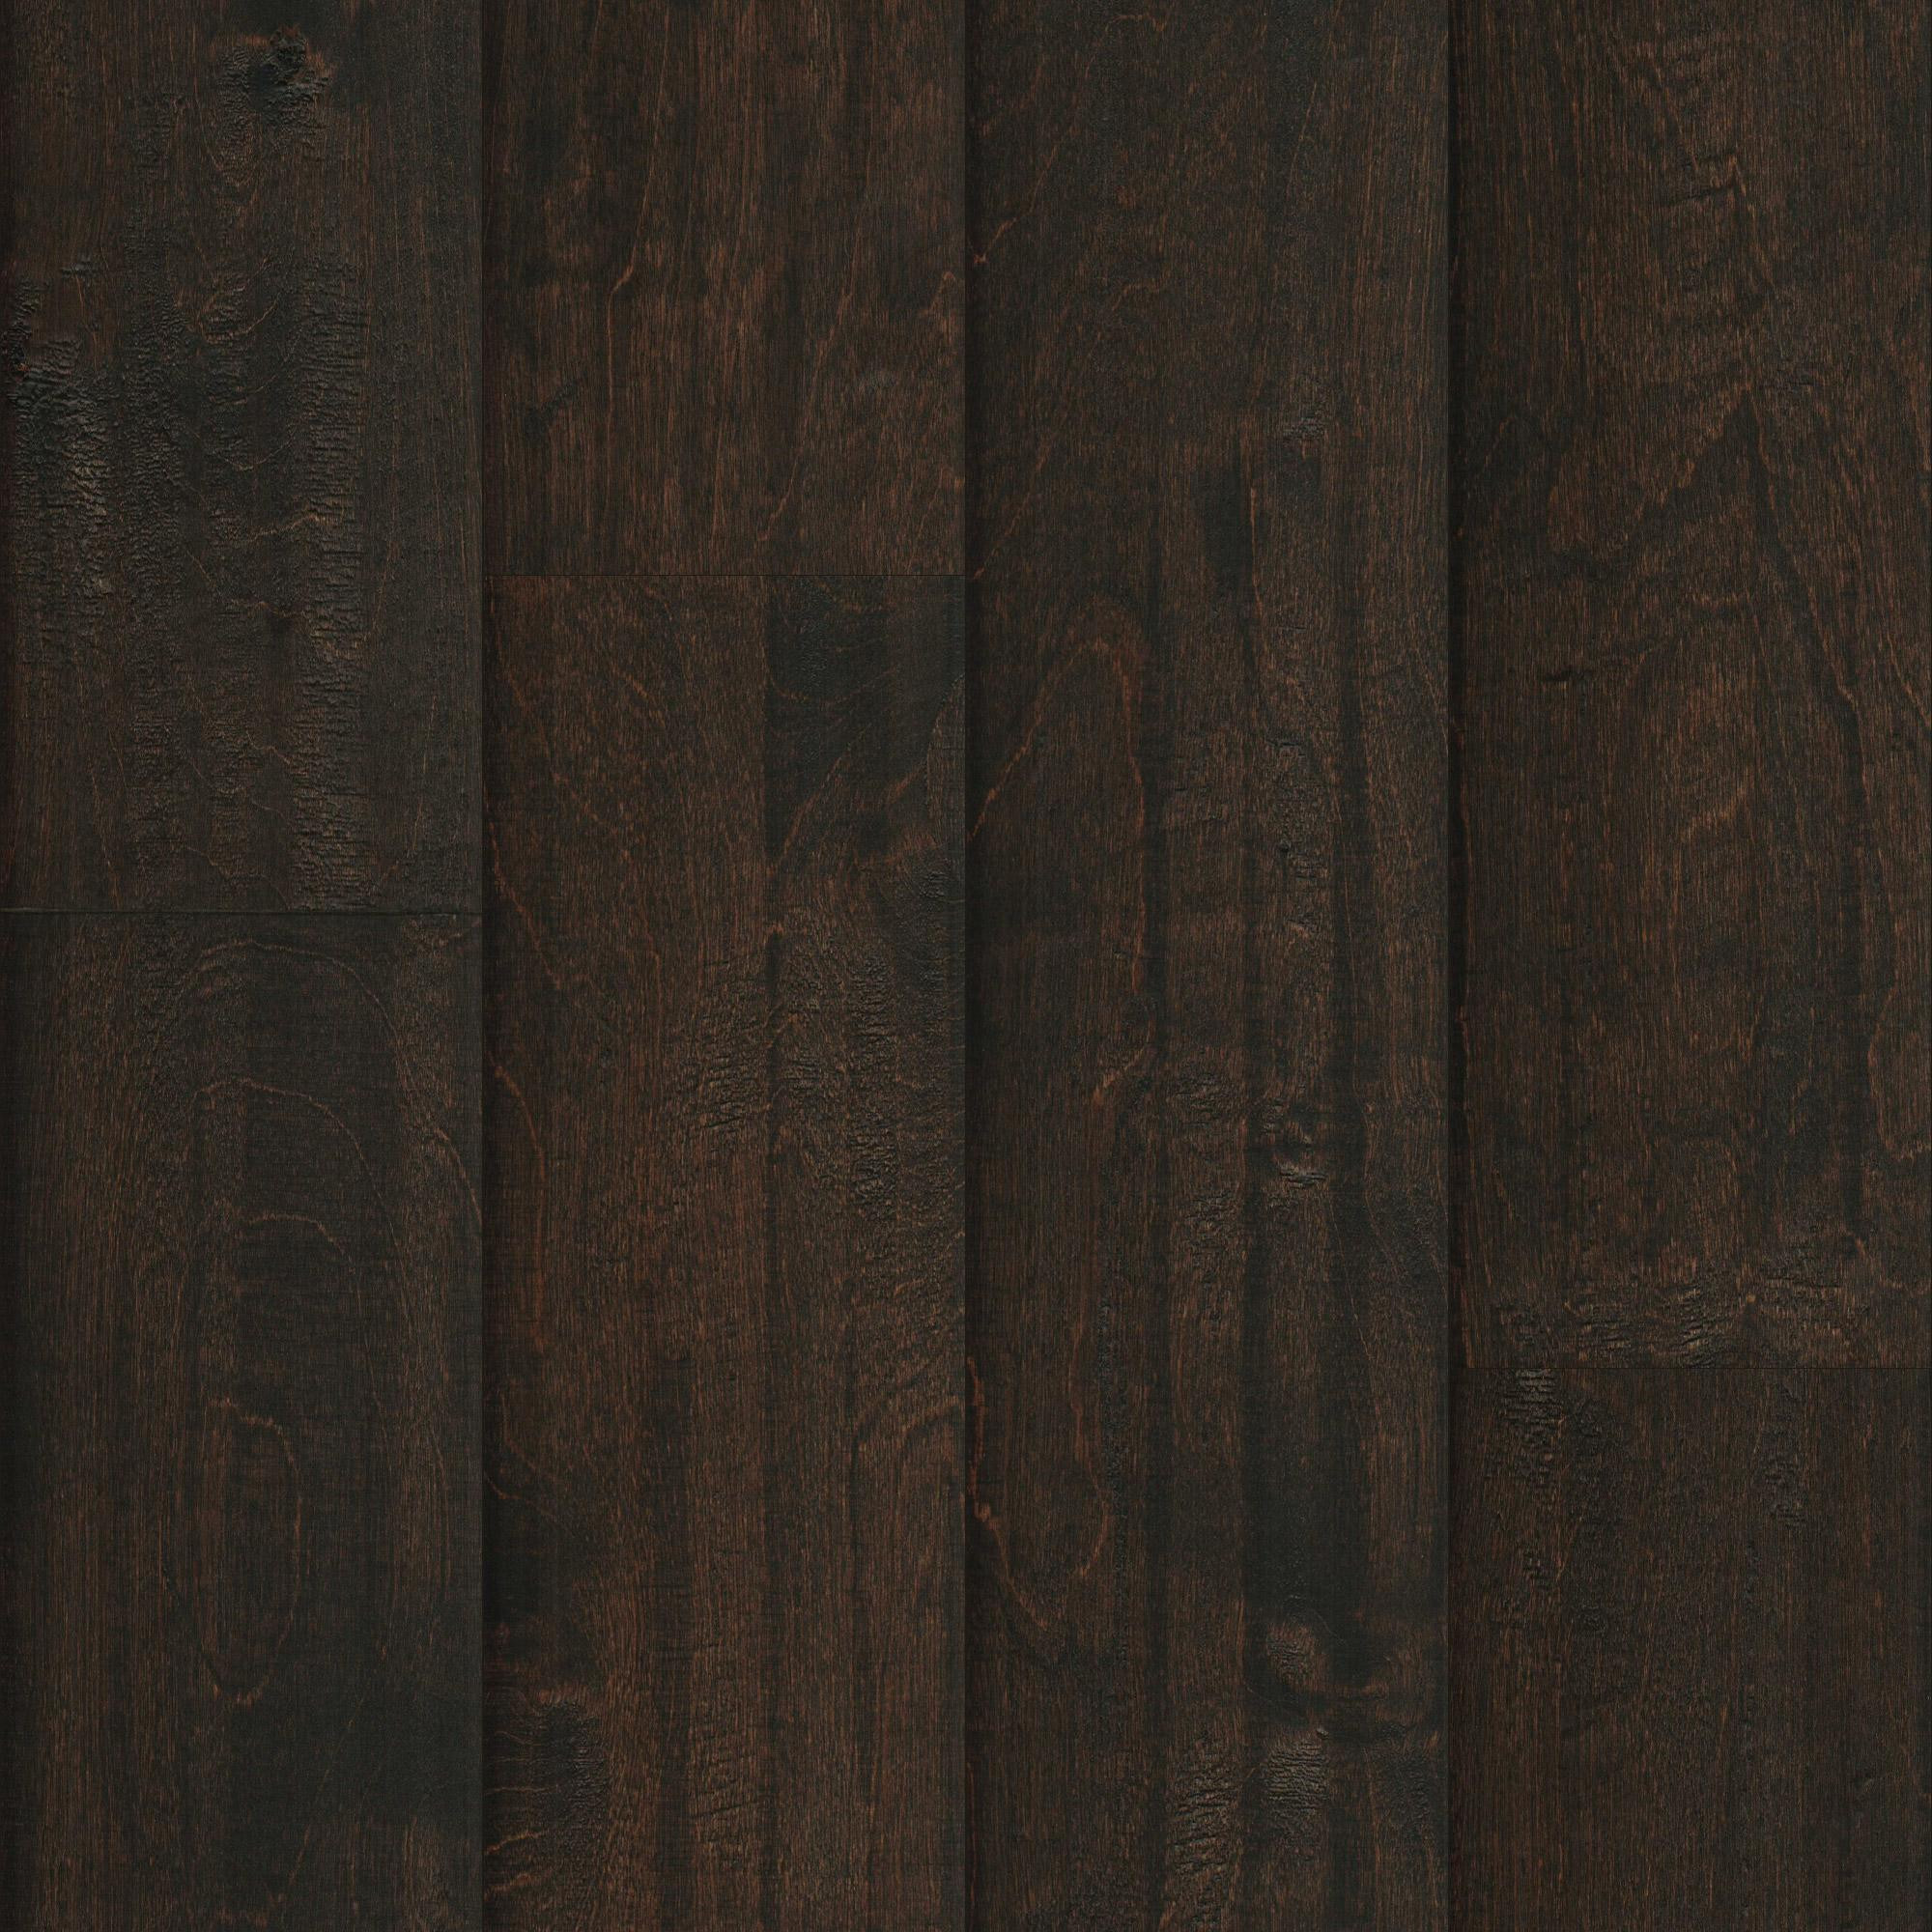 Hand Scraped Acacia solid Hardwood Flooring Of Mullican Castle Ridge Birch Espresso 5 Engineered Hardwood Flooring Intended for File 447 31